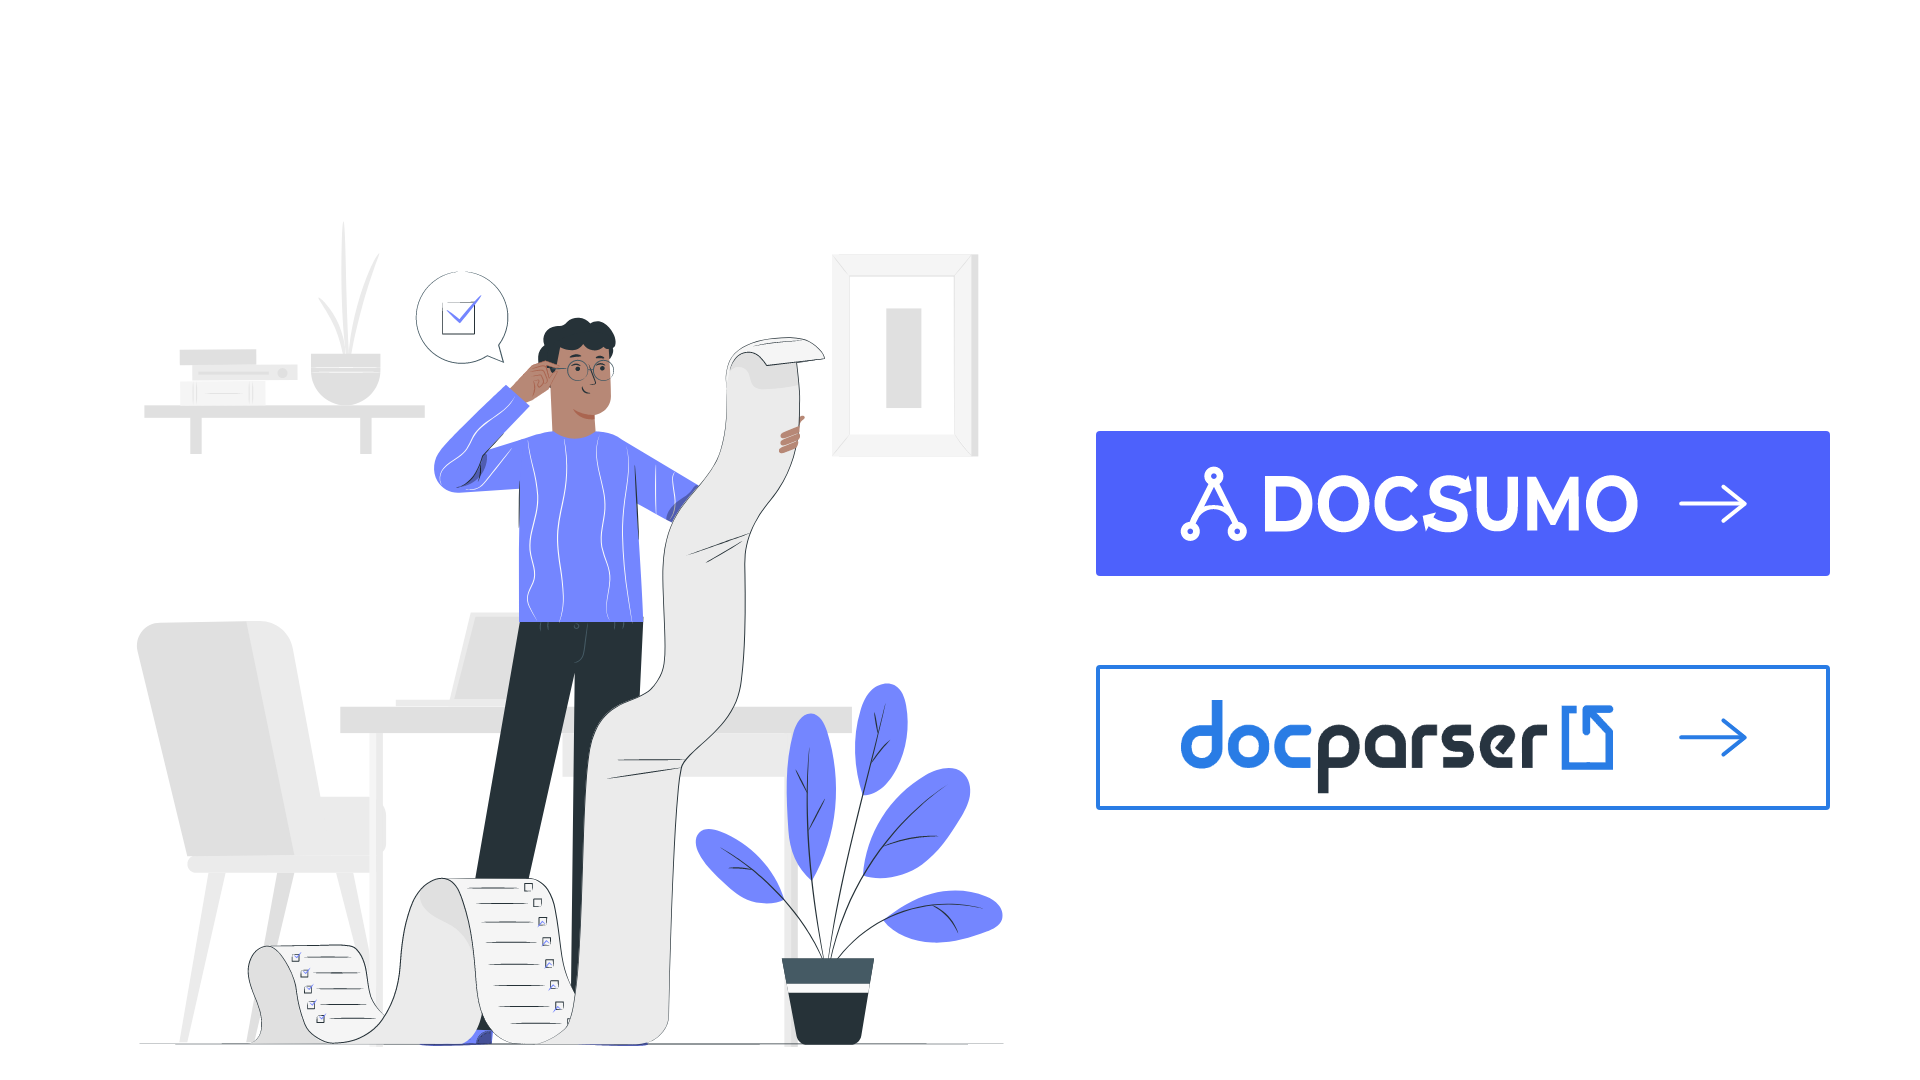 Is Docsumo a good alternative to Docparser?